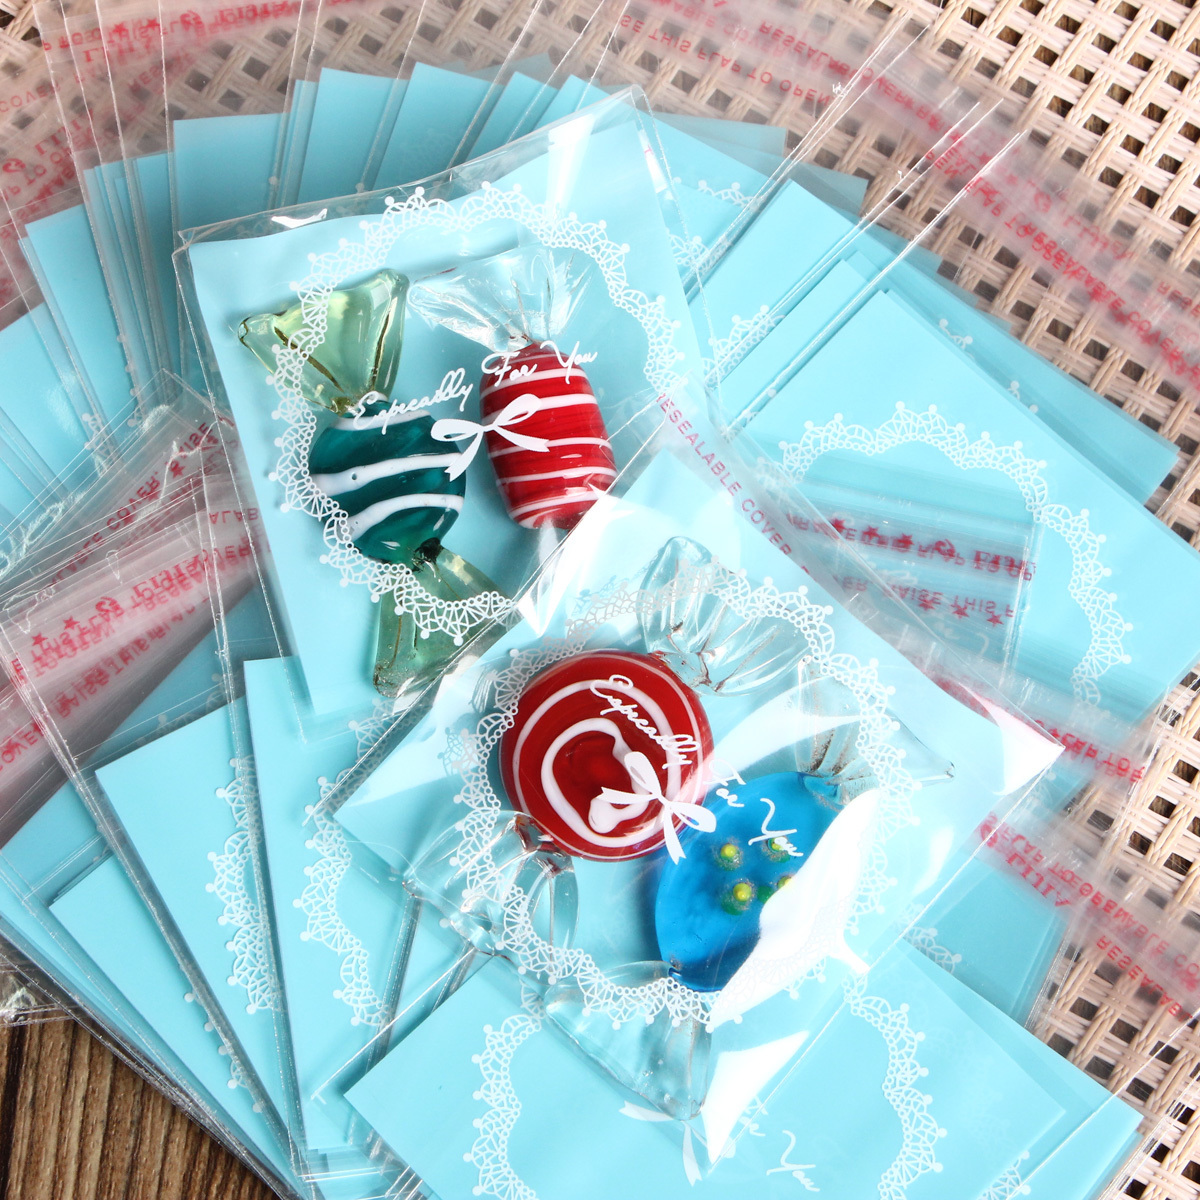 ... Bag Source · Cute 100Pcs Cookies Candy Self Adhesive Package Party Christmas Gift Bags7x7cm intl